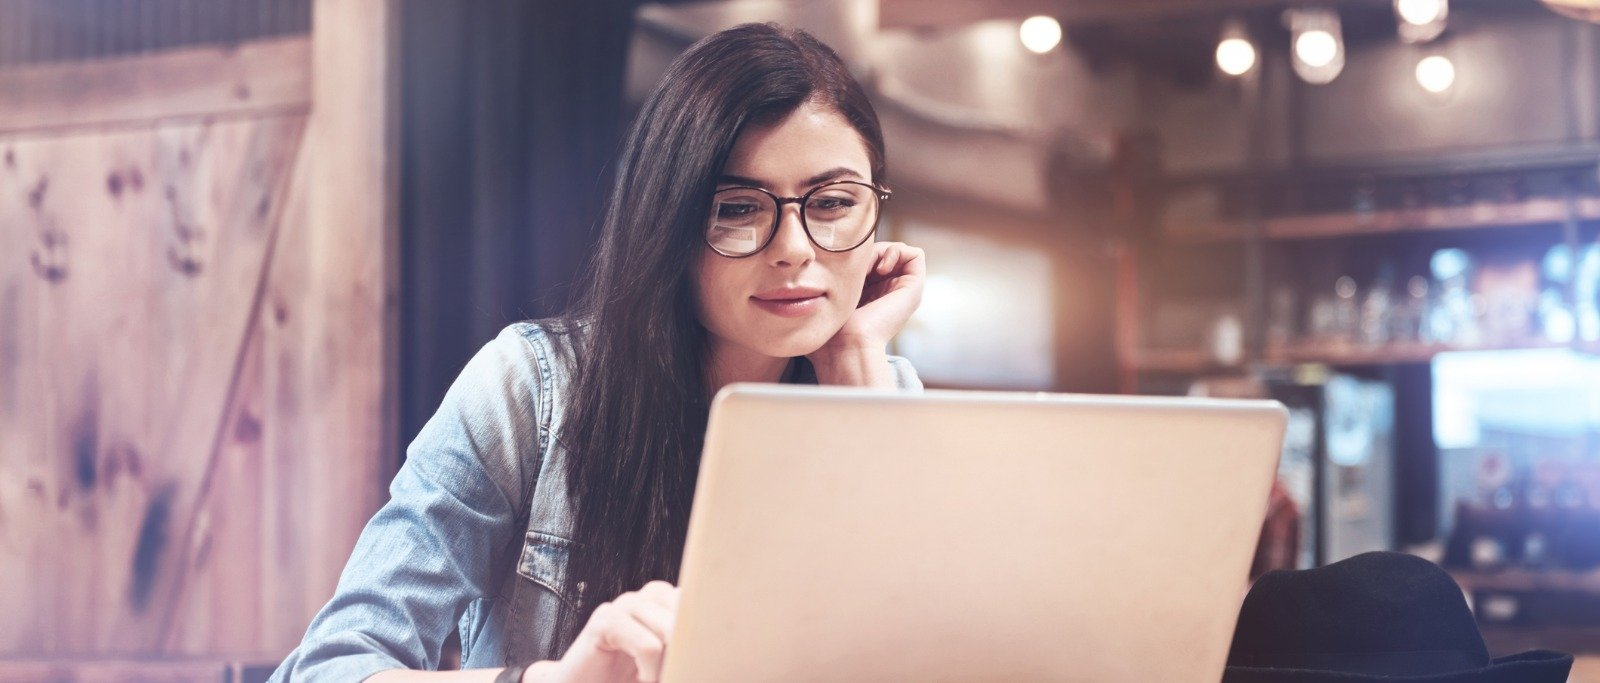 Female Generation Z employee working at a coffee shop | recruiting and hiring Gen Z employees